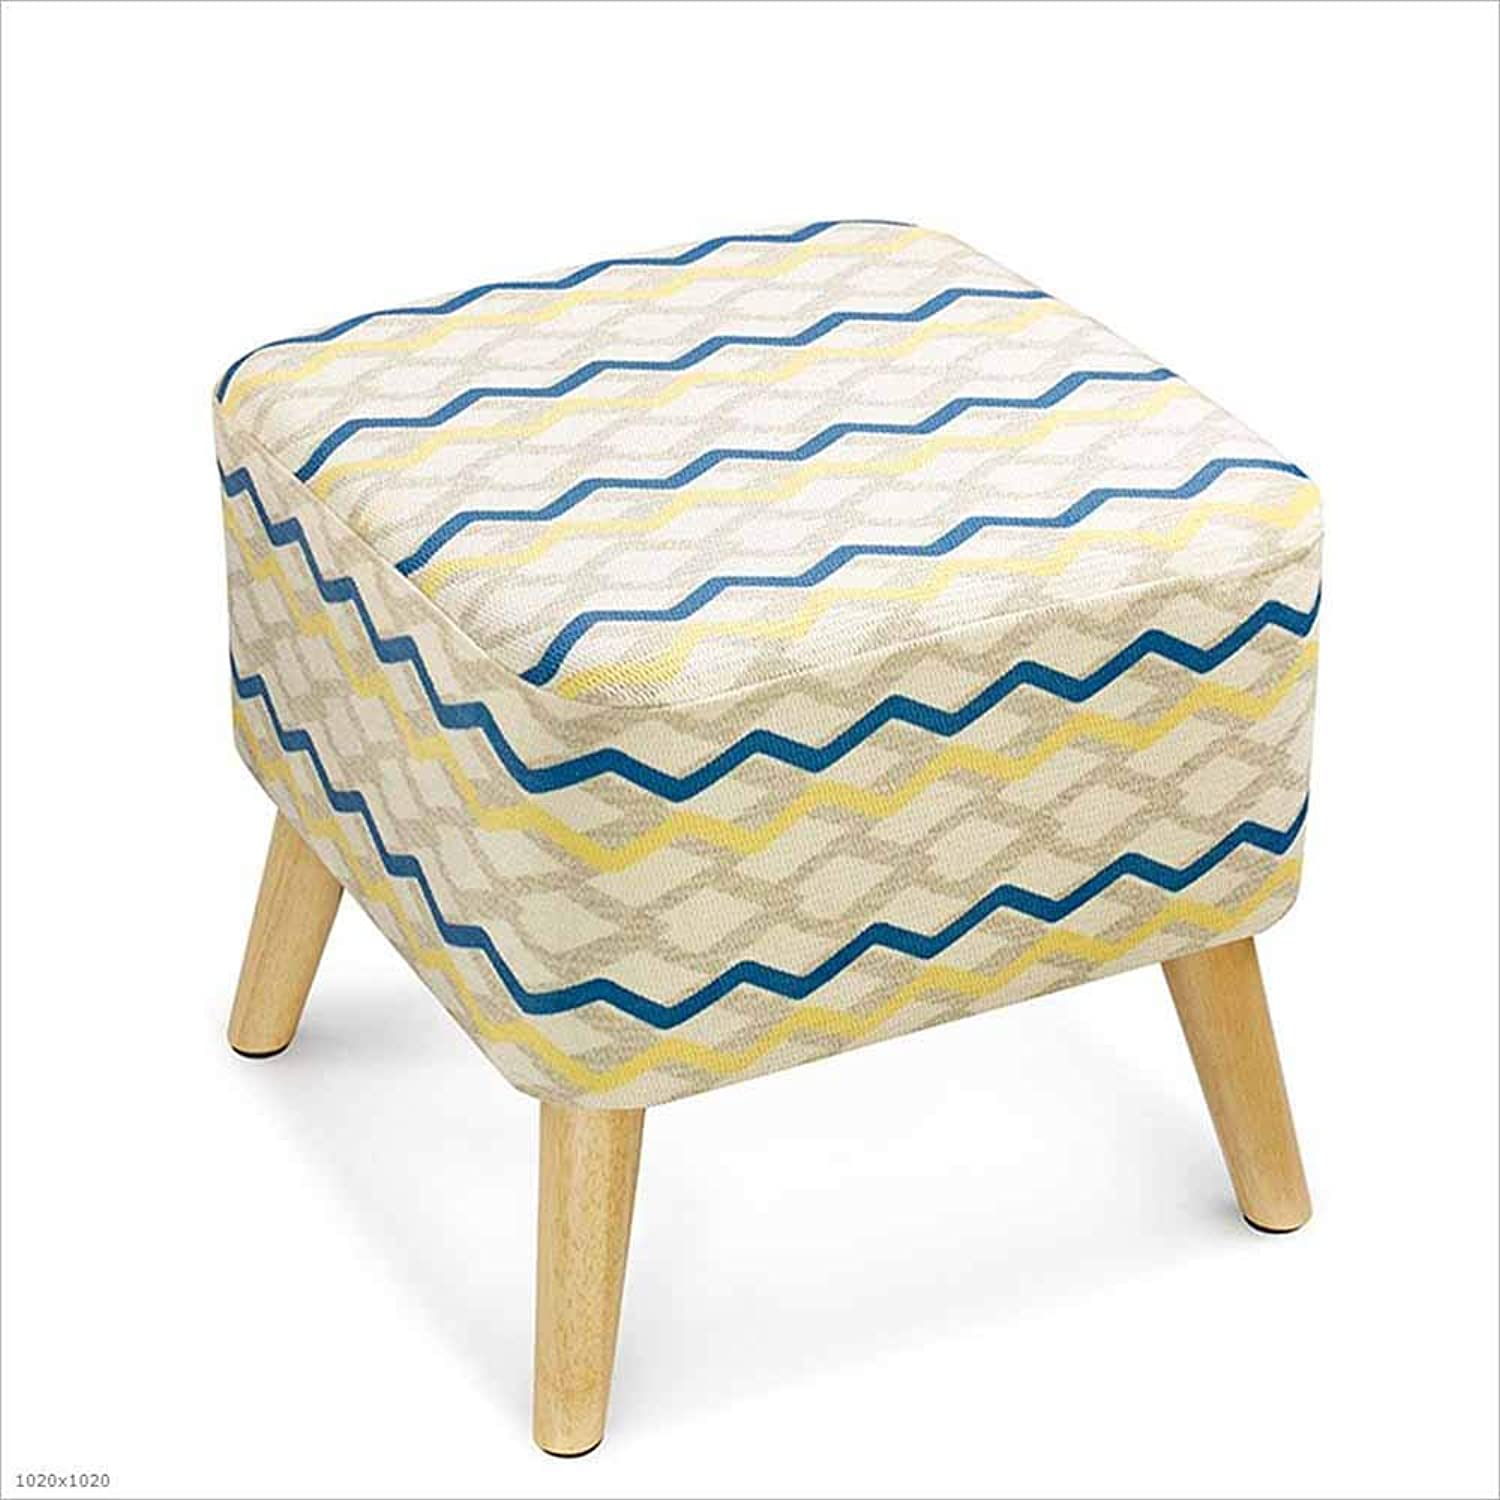 Change shoes Stool Solid Wood Cushion Sofa Stool Retro Solid Wood Low Stool Bedside Stool 40×40Cm, 2